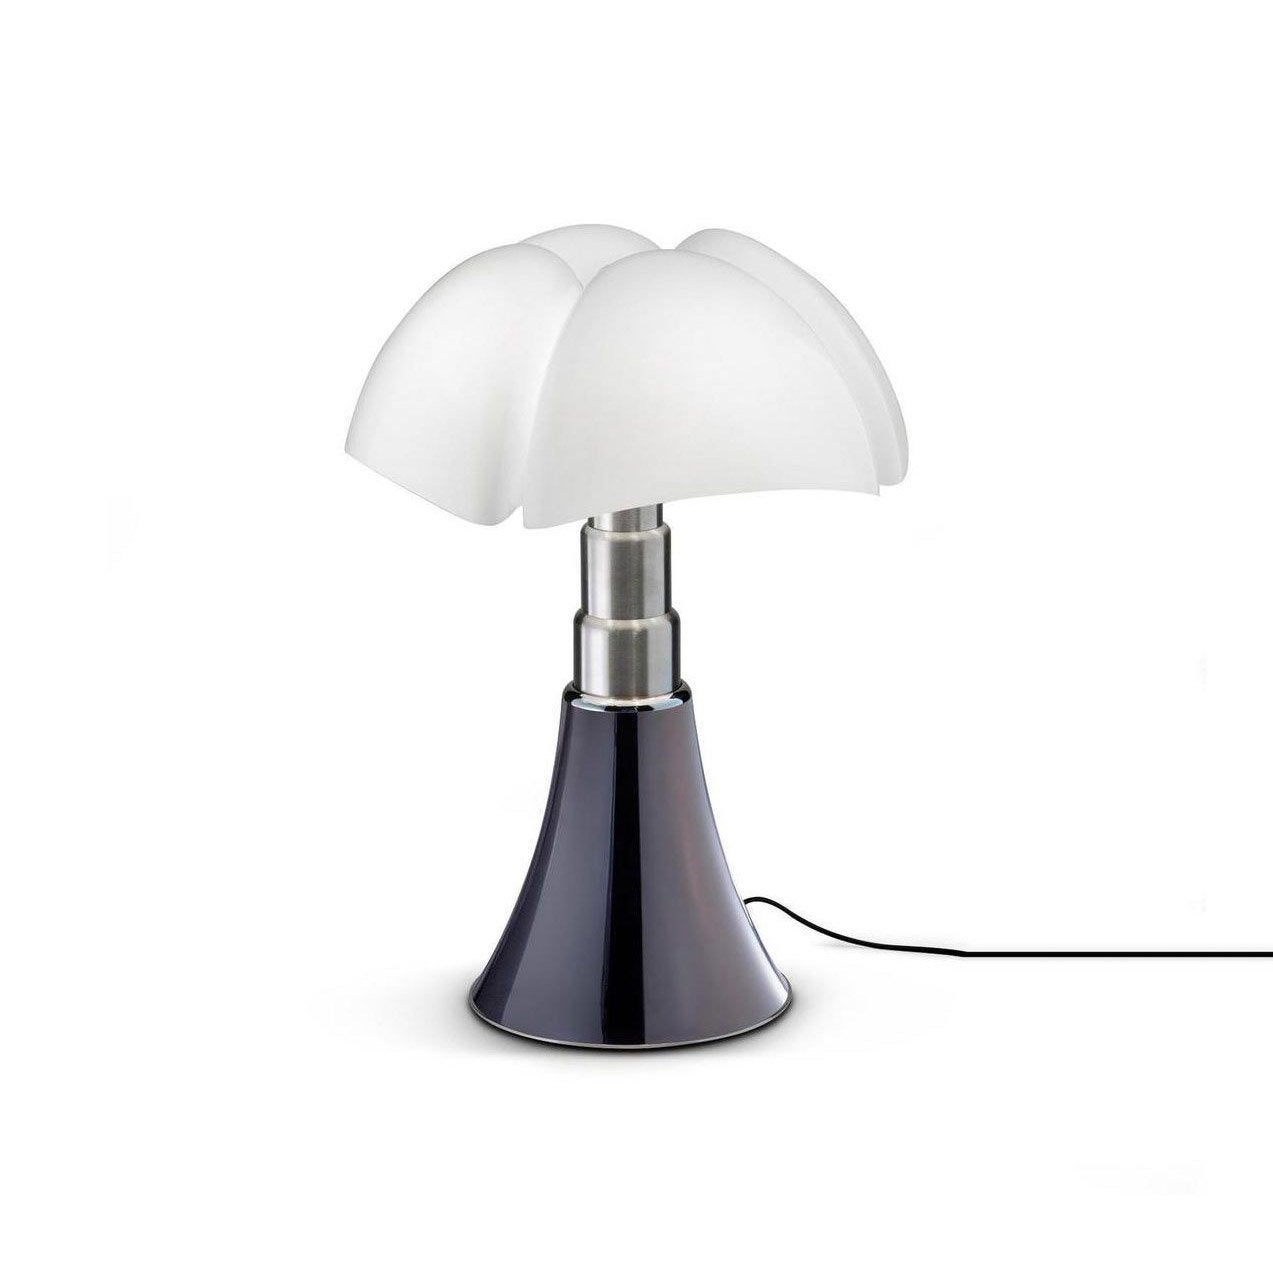 Lampe design Mini Pipistrello touch titane, ampoule LED integrée, H.35cm